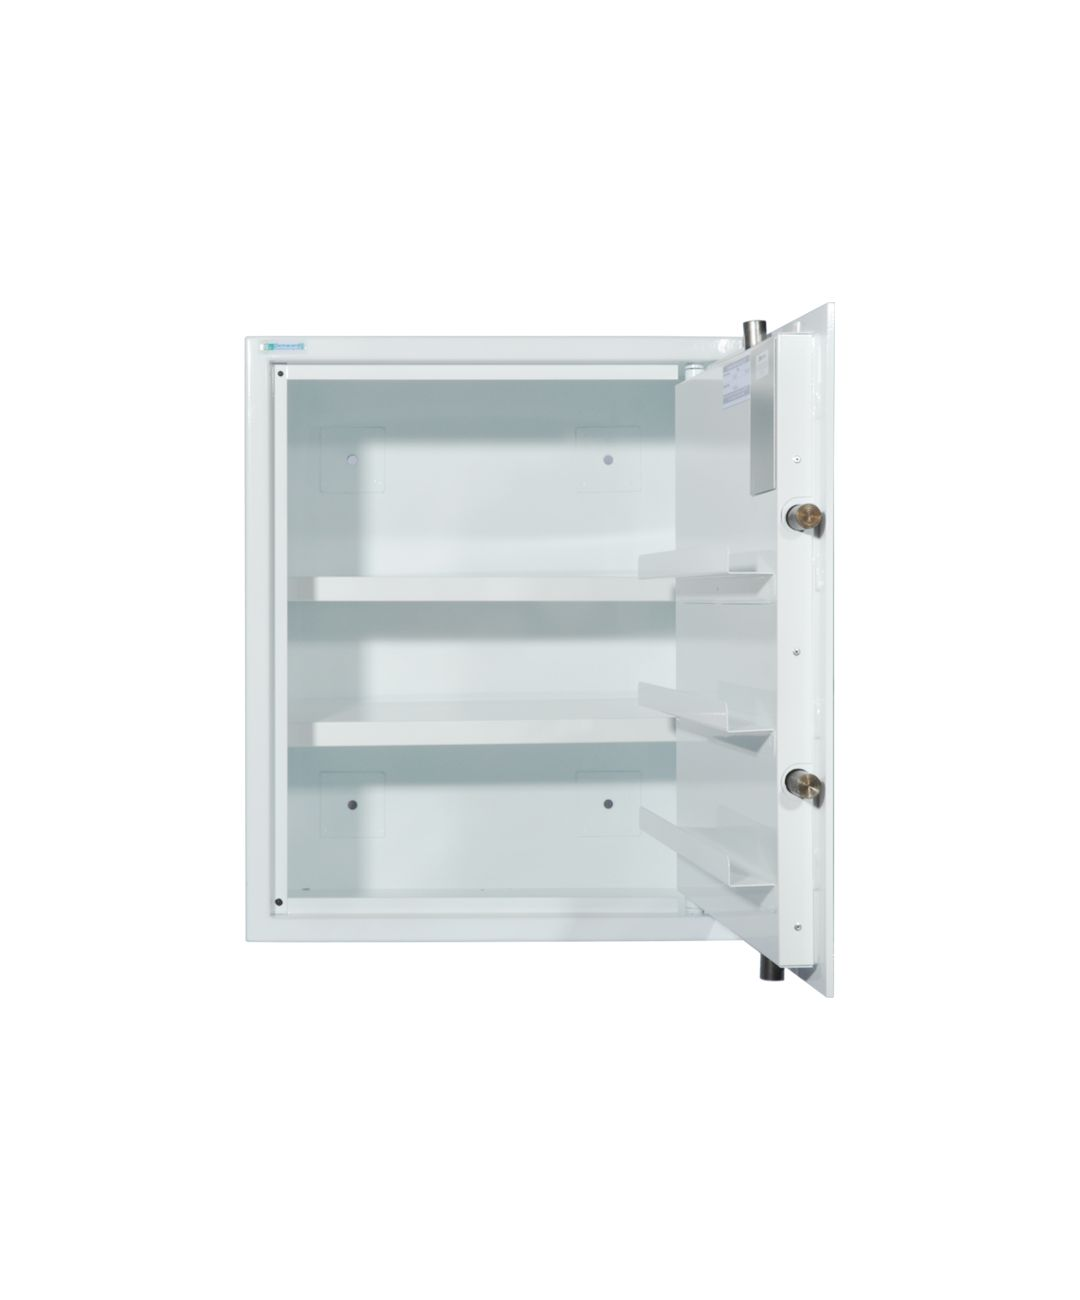 Controlled Drug Cabinet (CDC500) W500 x H600 x D330